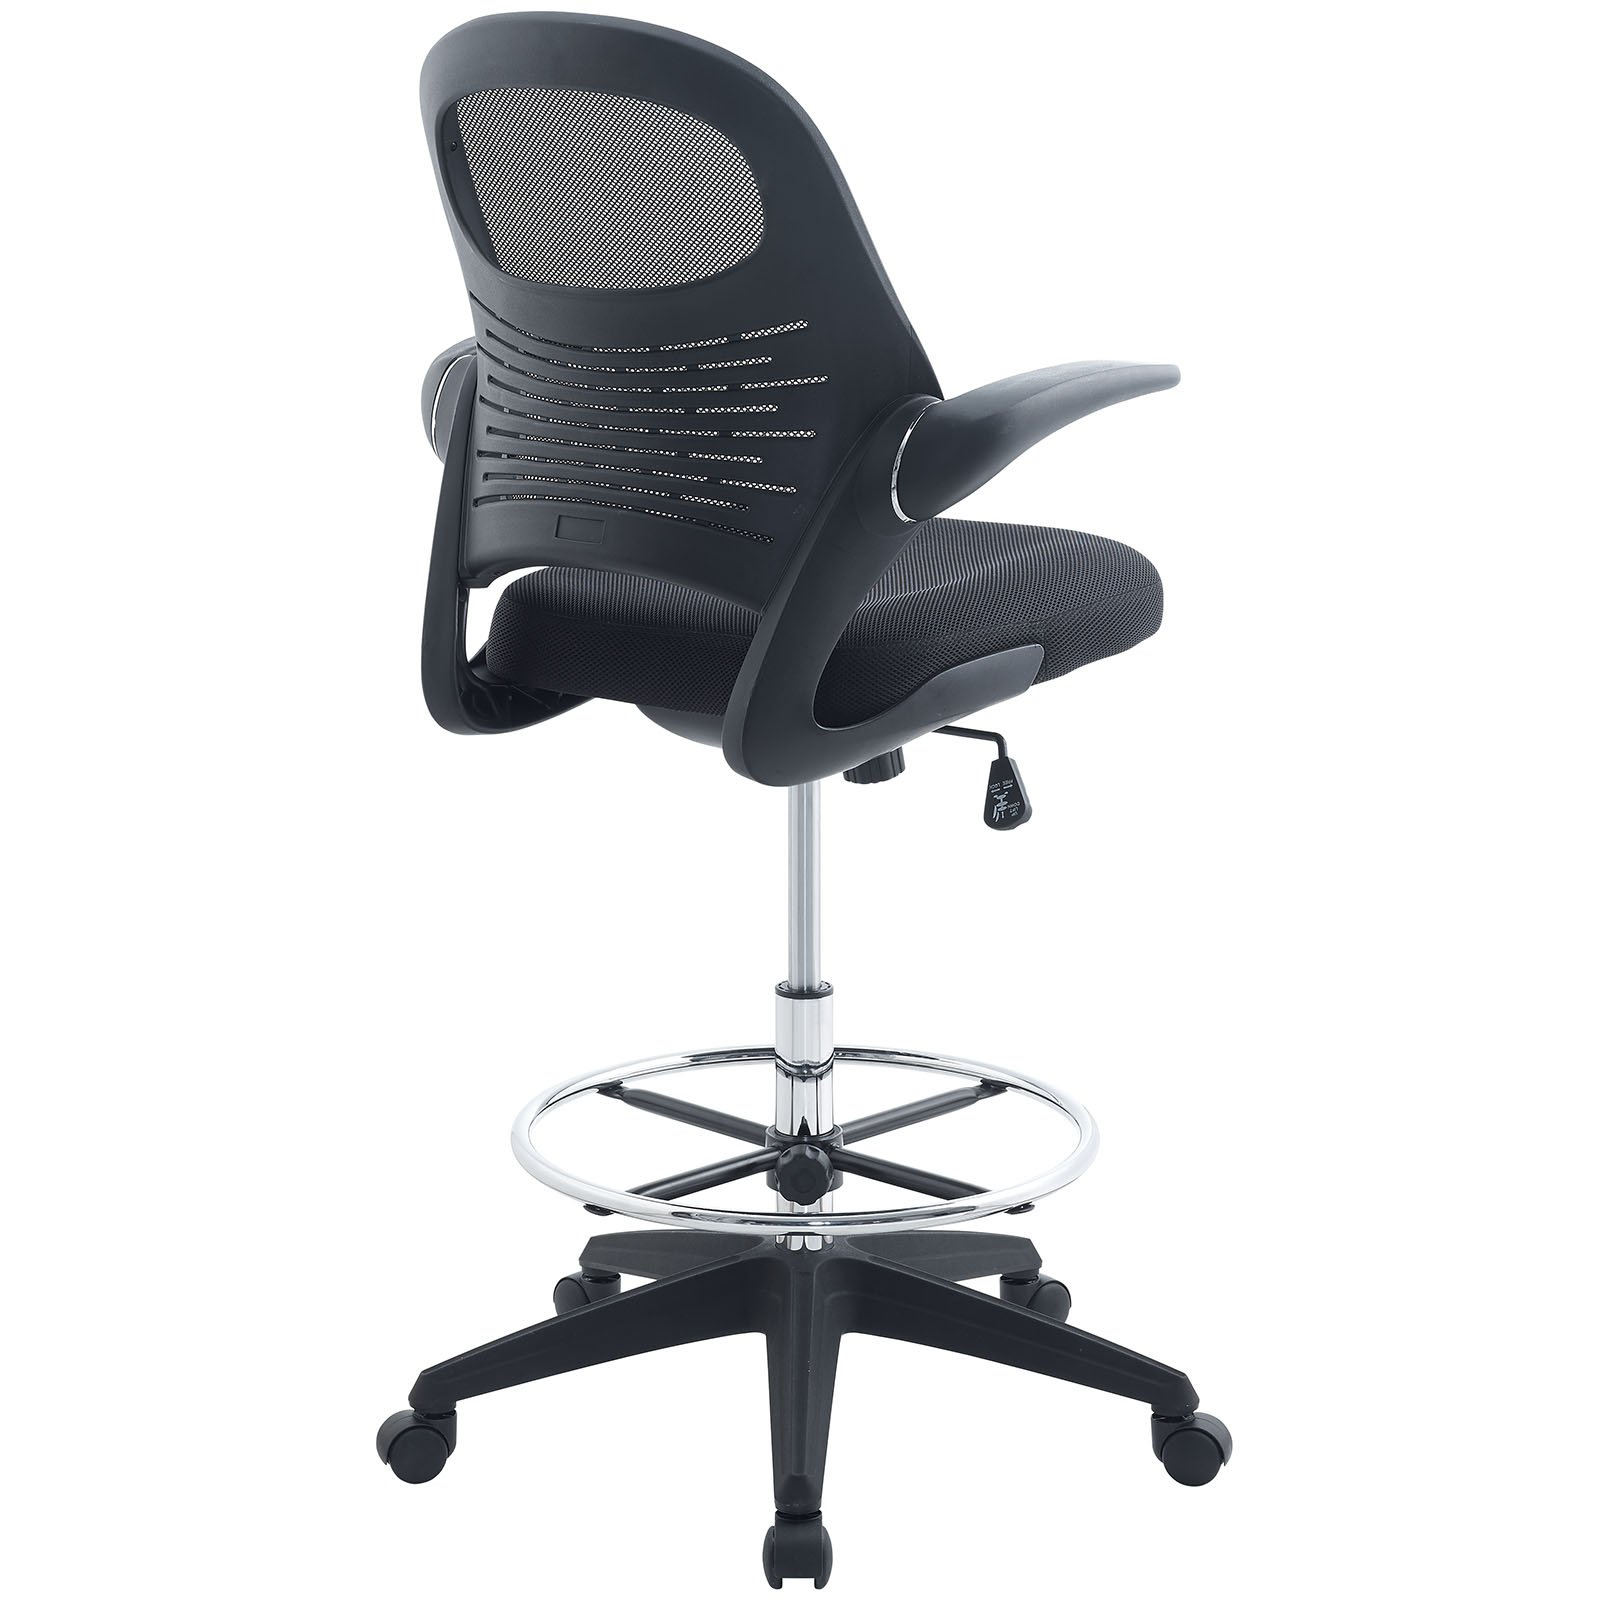 Modway Advance Drafting Chair In Black - Reception Desk Chair - Tall Office Chair For Adjustable Standing Desks - Drafting Table Chair - Flip-Up Arms